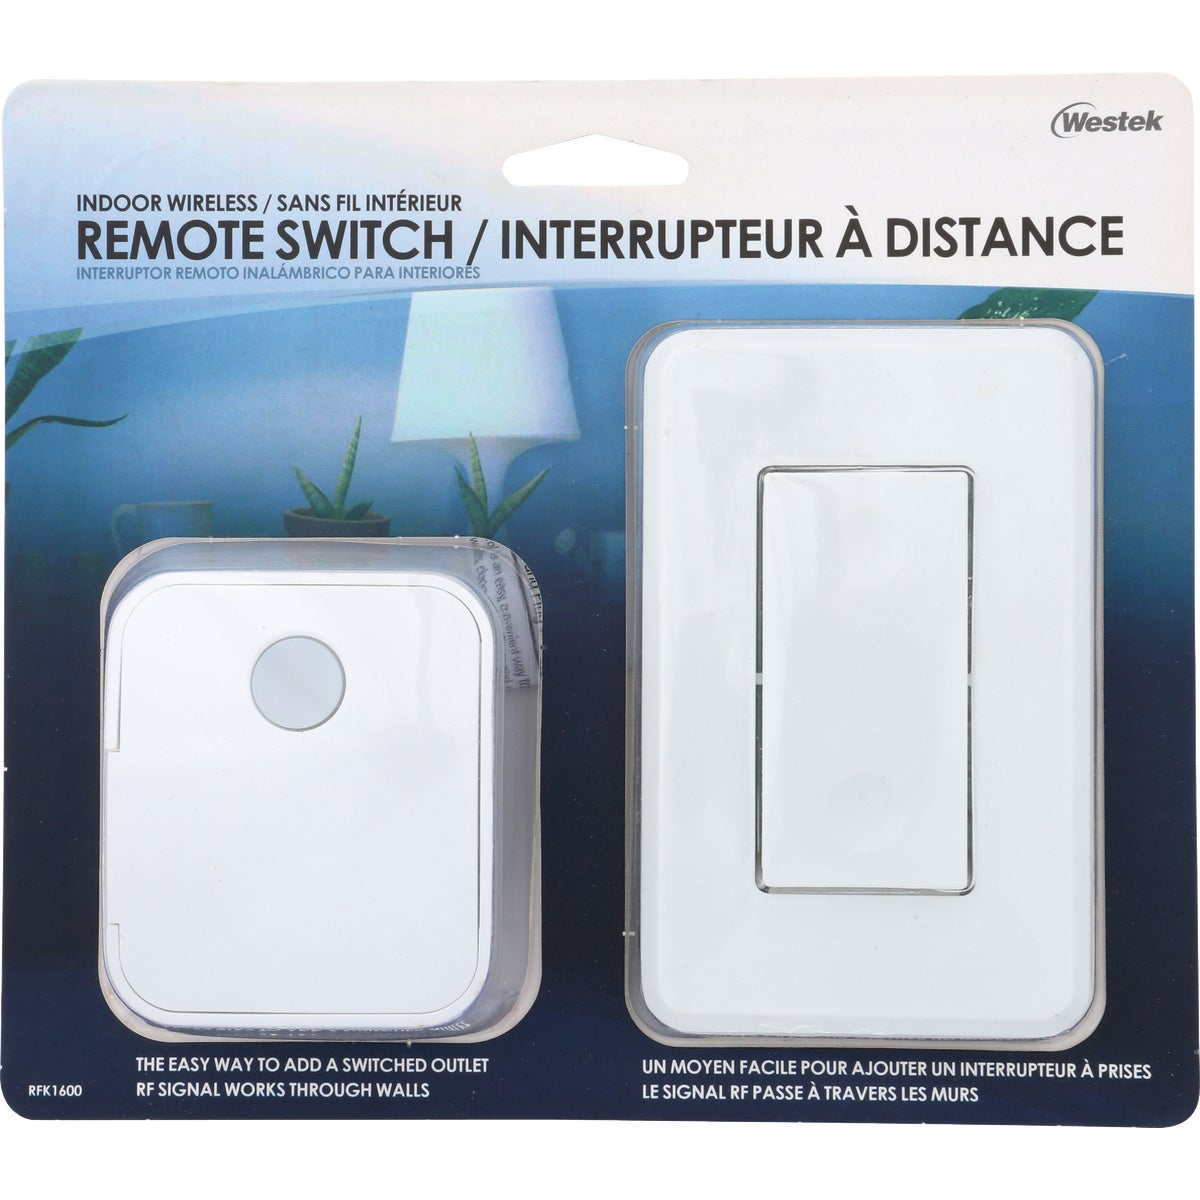 WIRELESS SWITCH - RFK100LC by Amertac   Westek